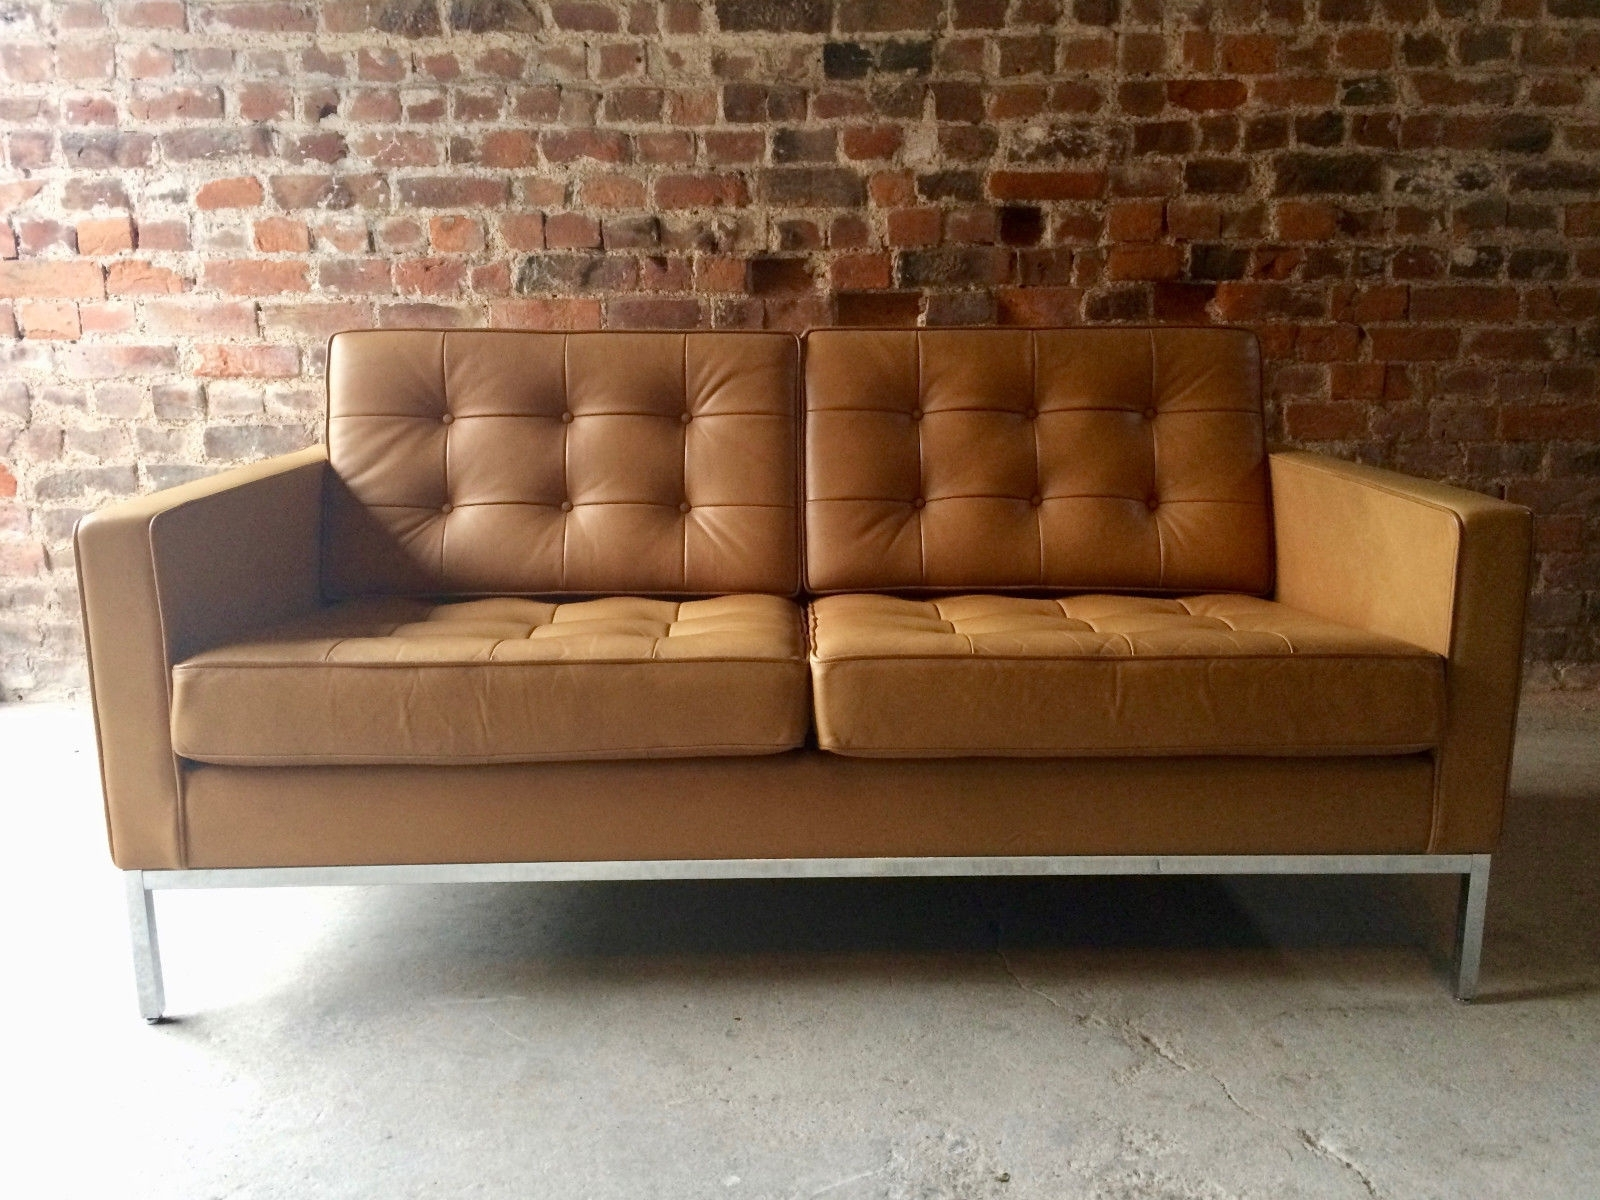 Florence Knoll Leather Sofas Within Most Current Vintage 2 Seater Leather Sofaflorence Knoll For Knoll For Sale (View 8 of 15)